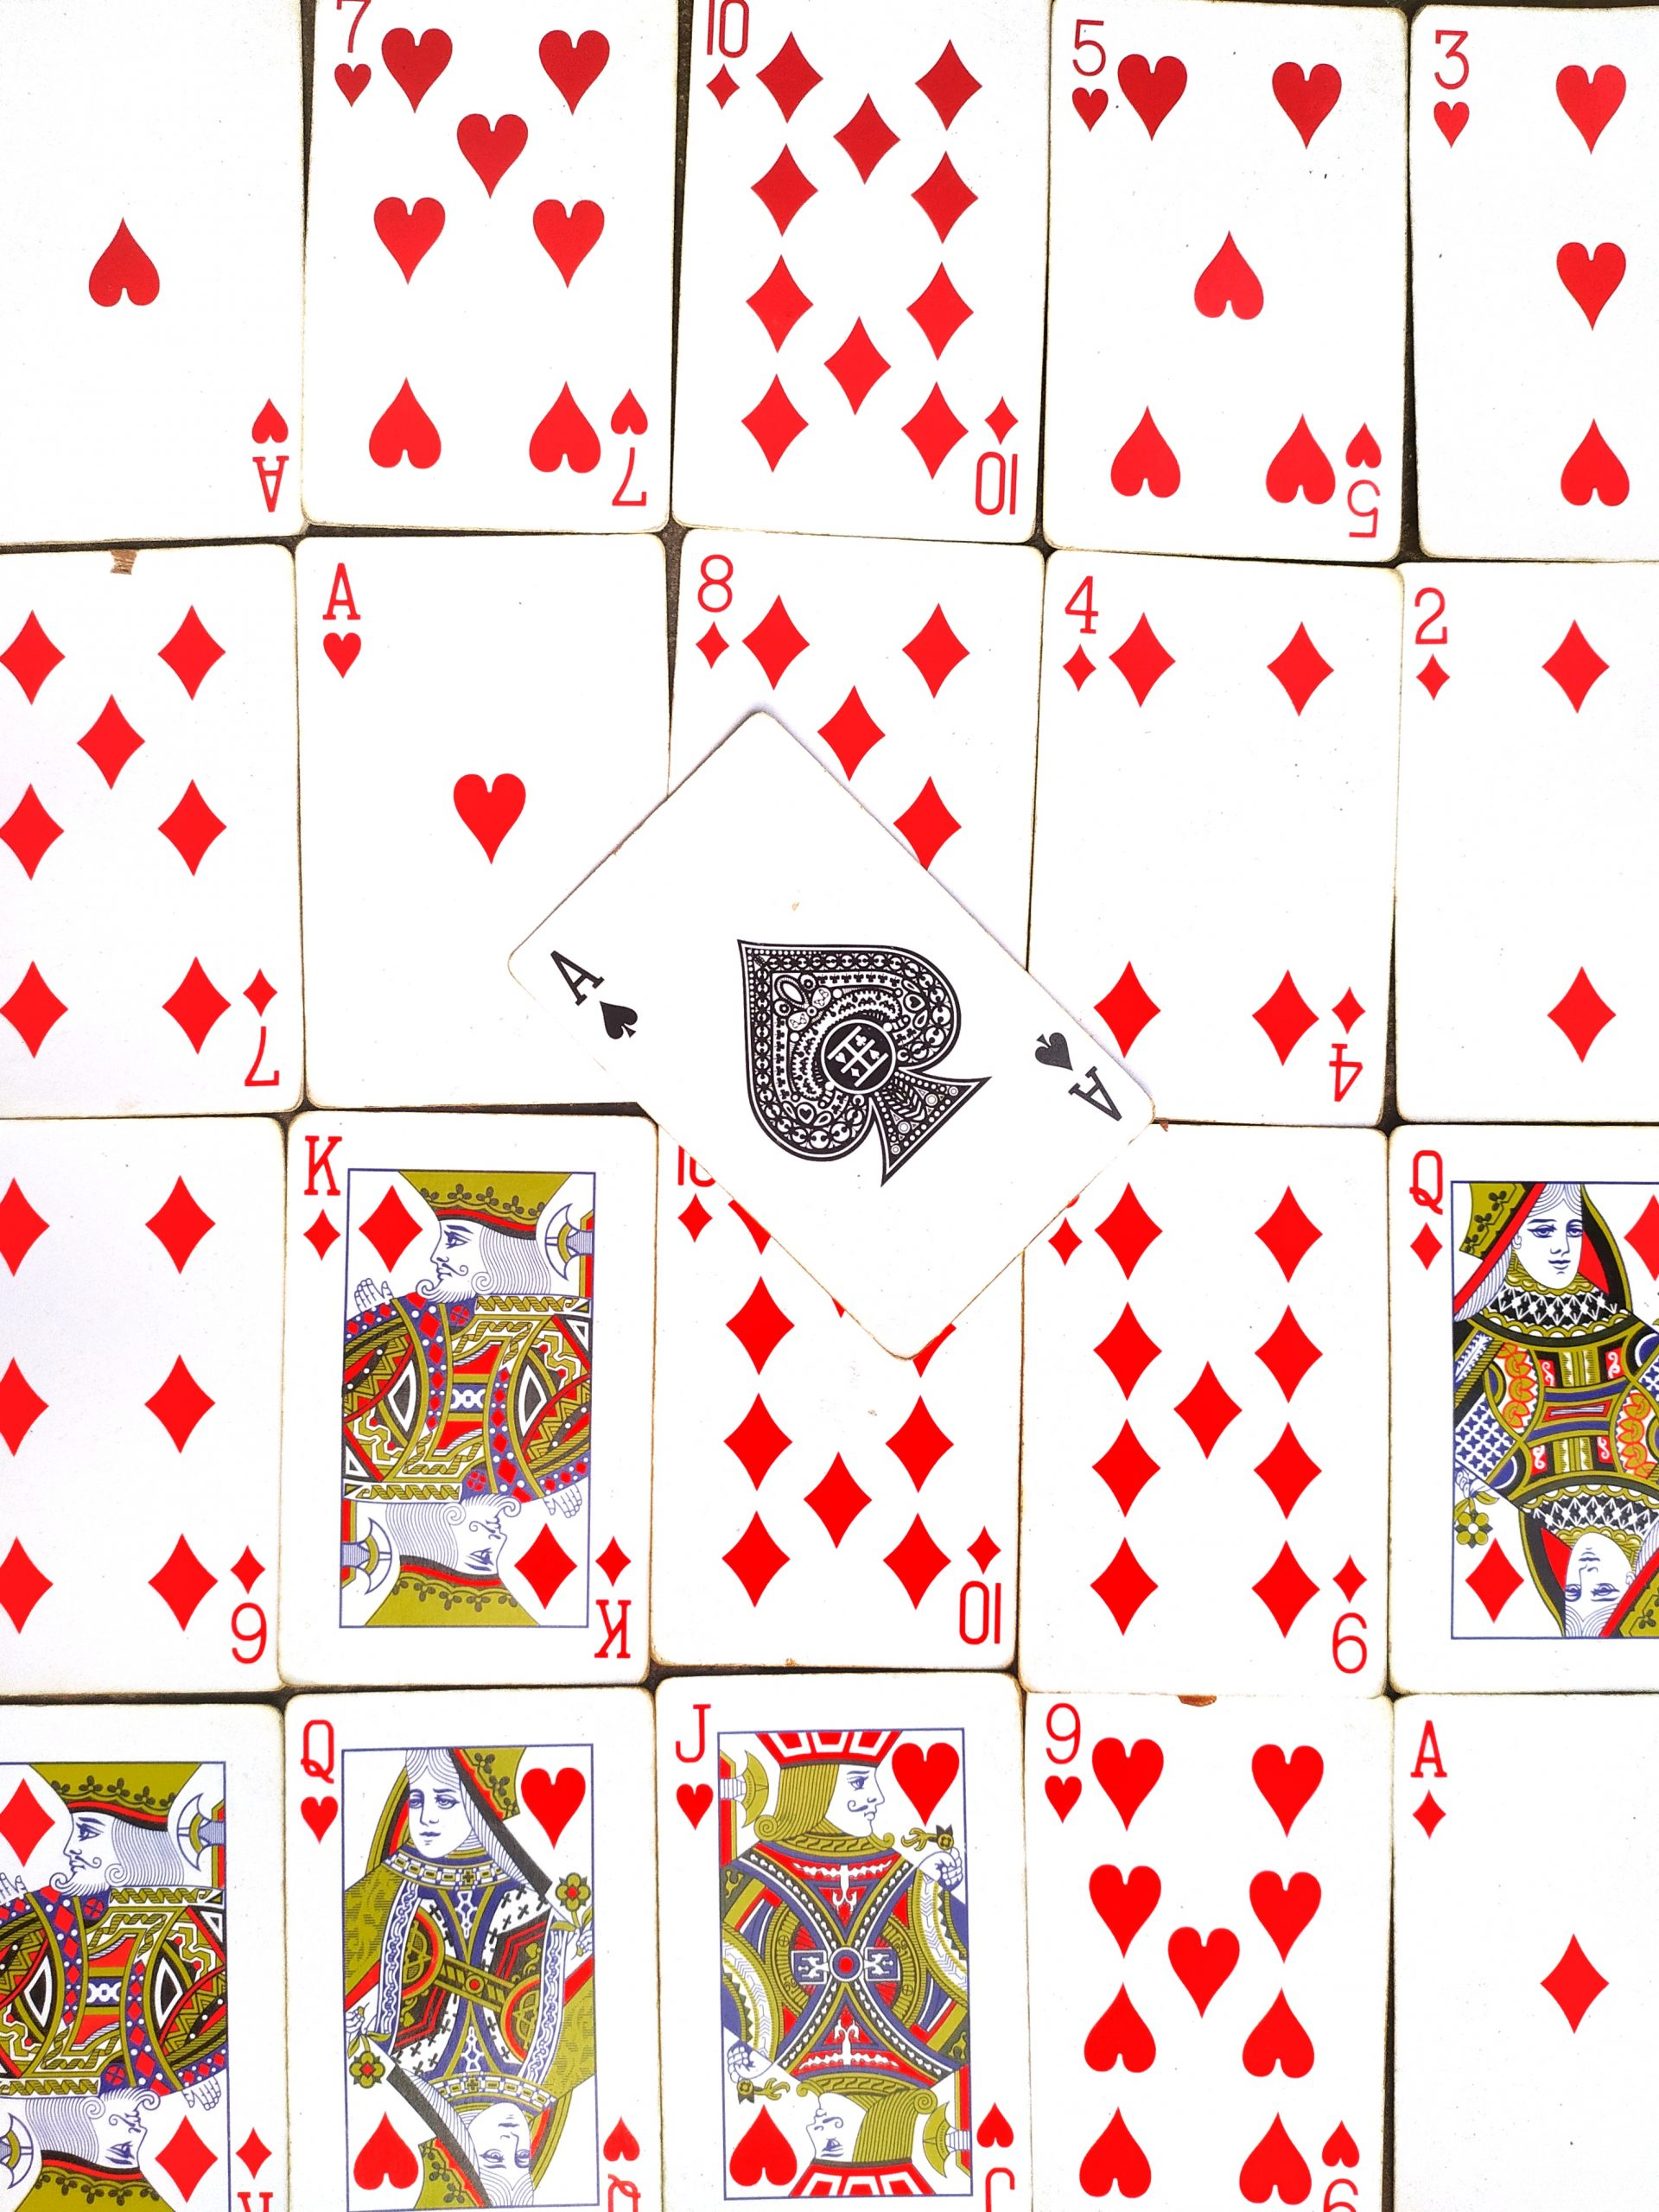 Playing cards arranged